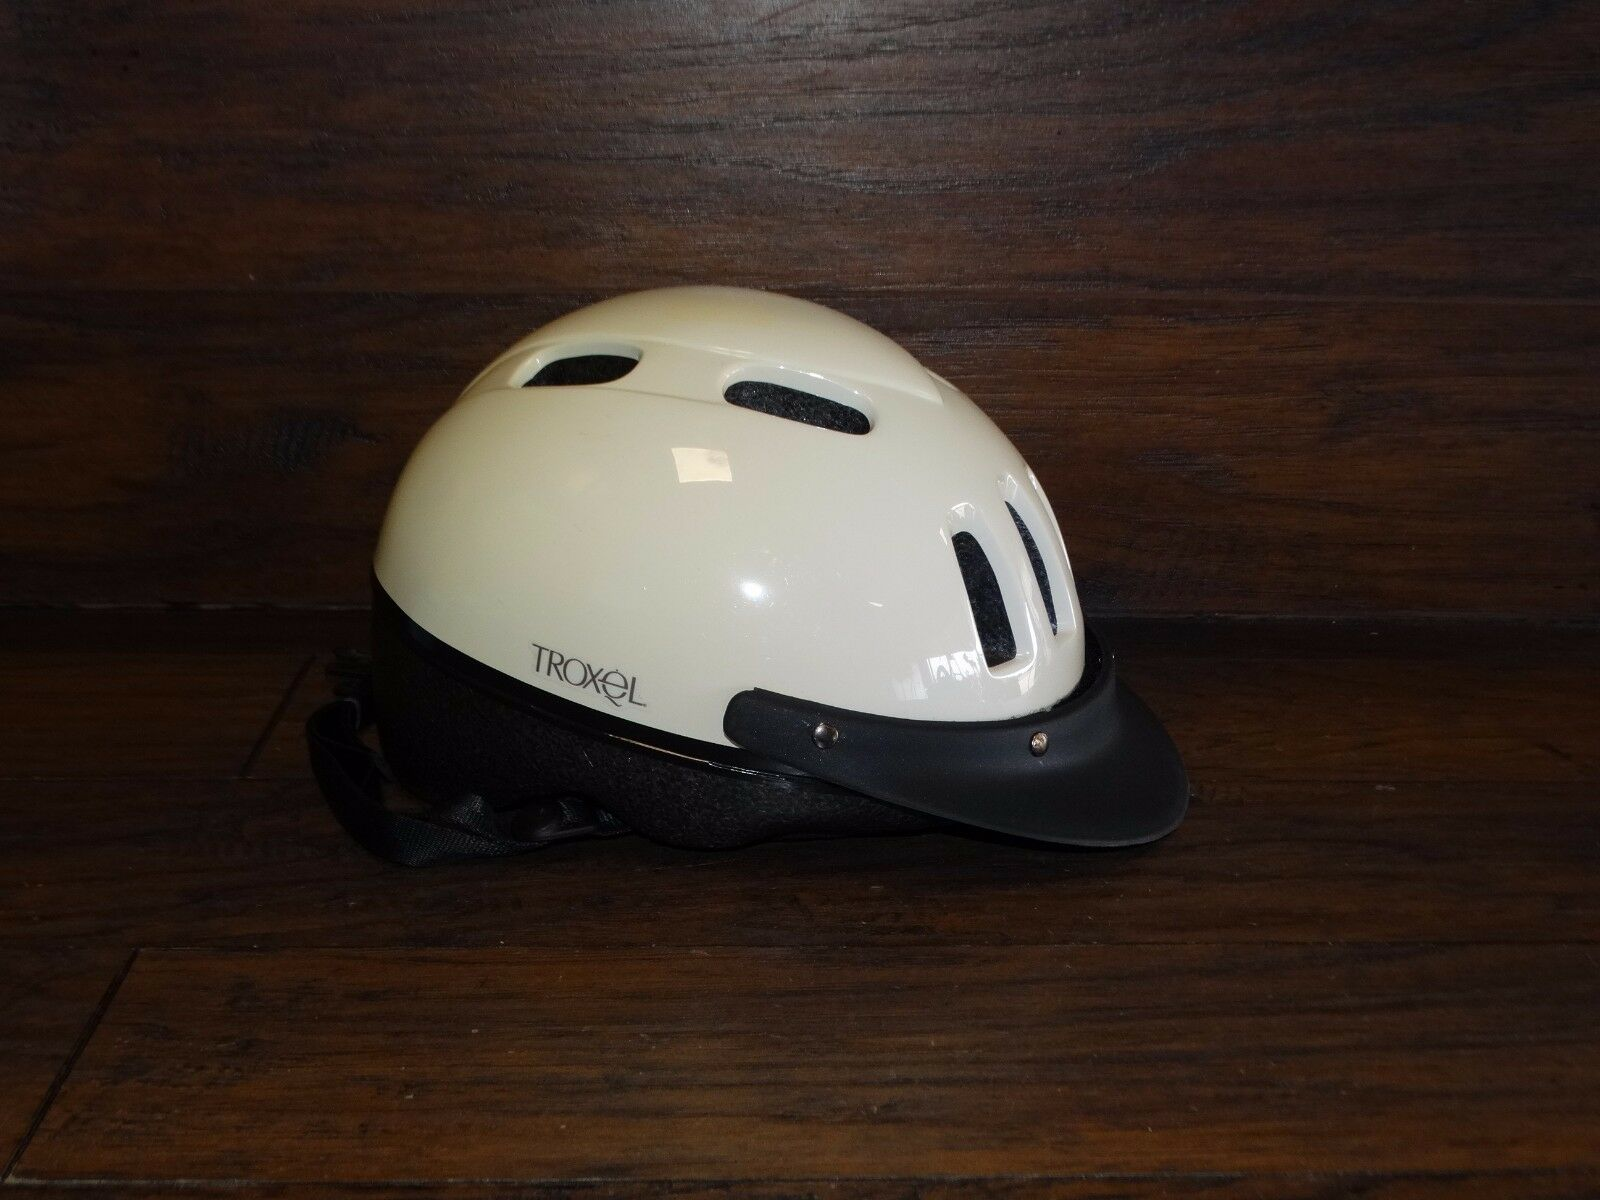 20290 Troxel Horse Riding Equestrian Helmet - Adult Large